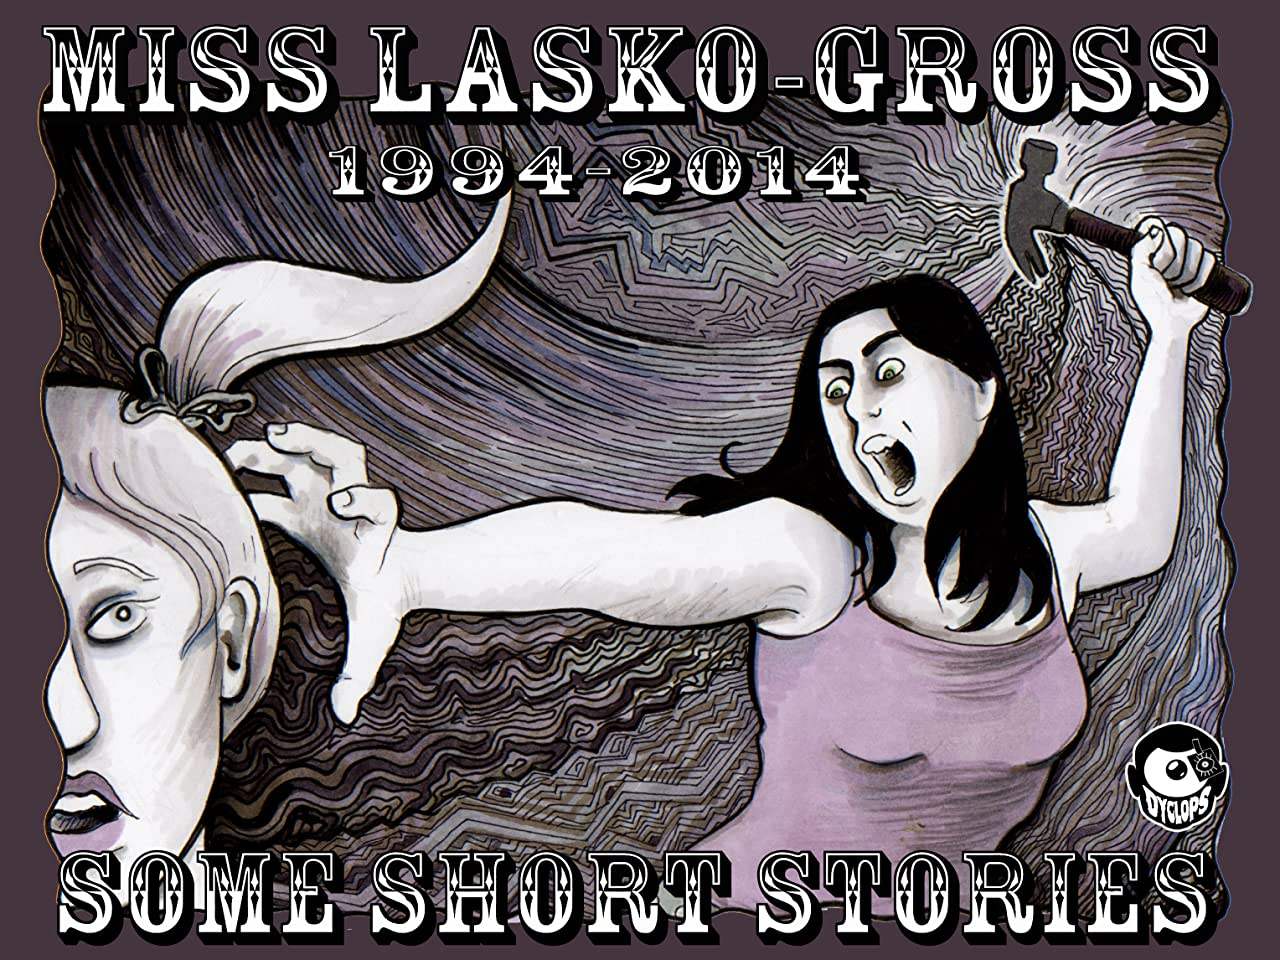 Miss Lasko-Gross 1994-2014